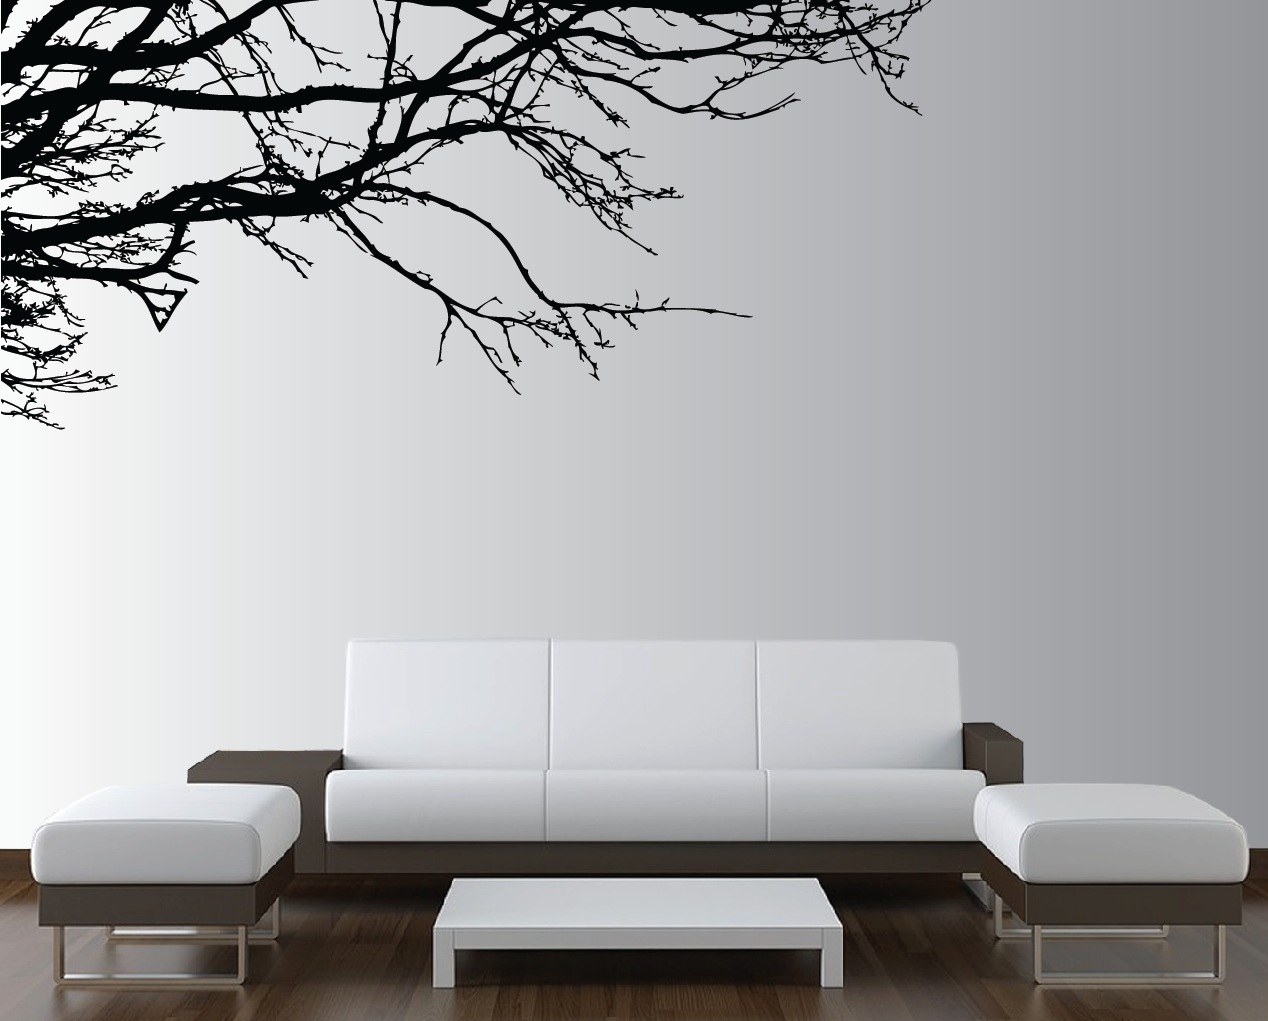 Large wall tree nursery decal oak branches 1130 for Big wall decor